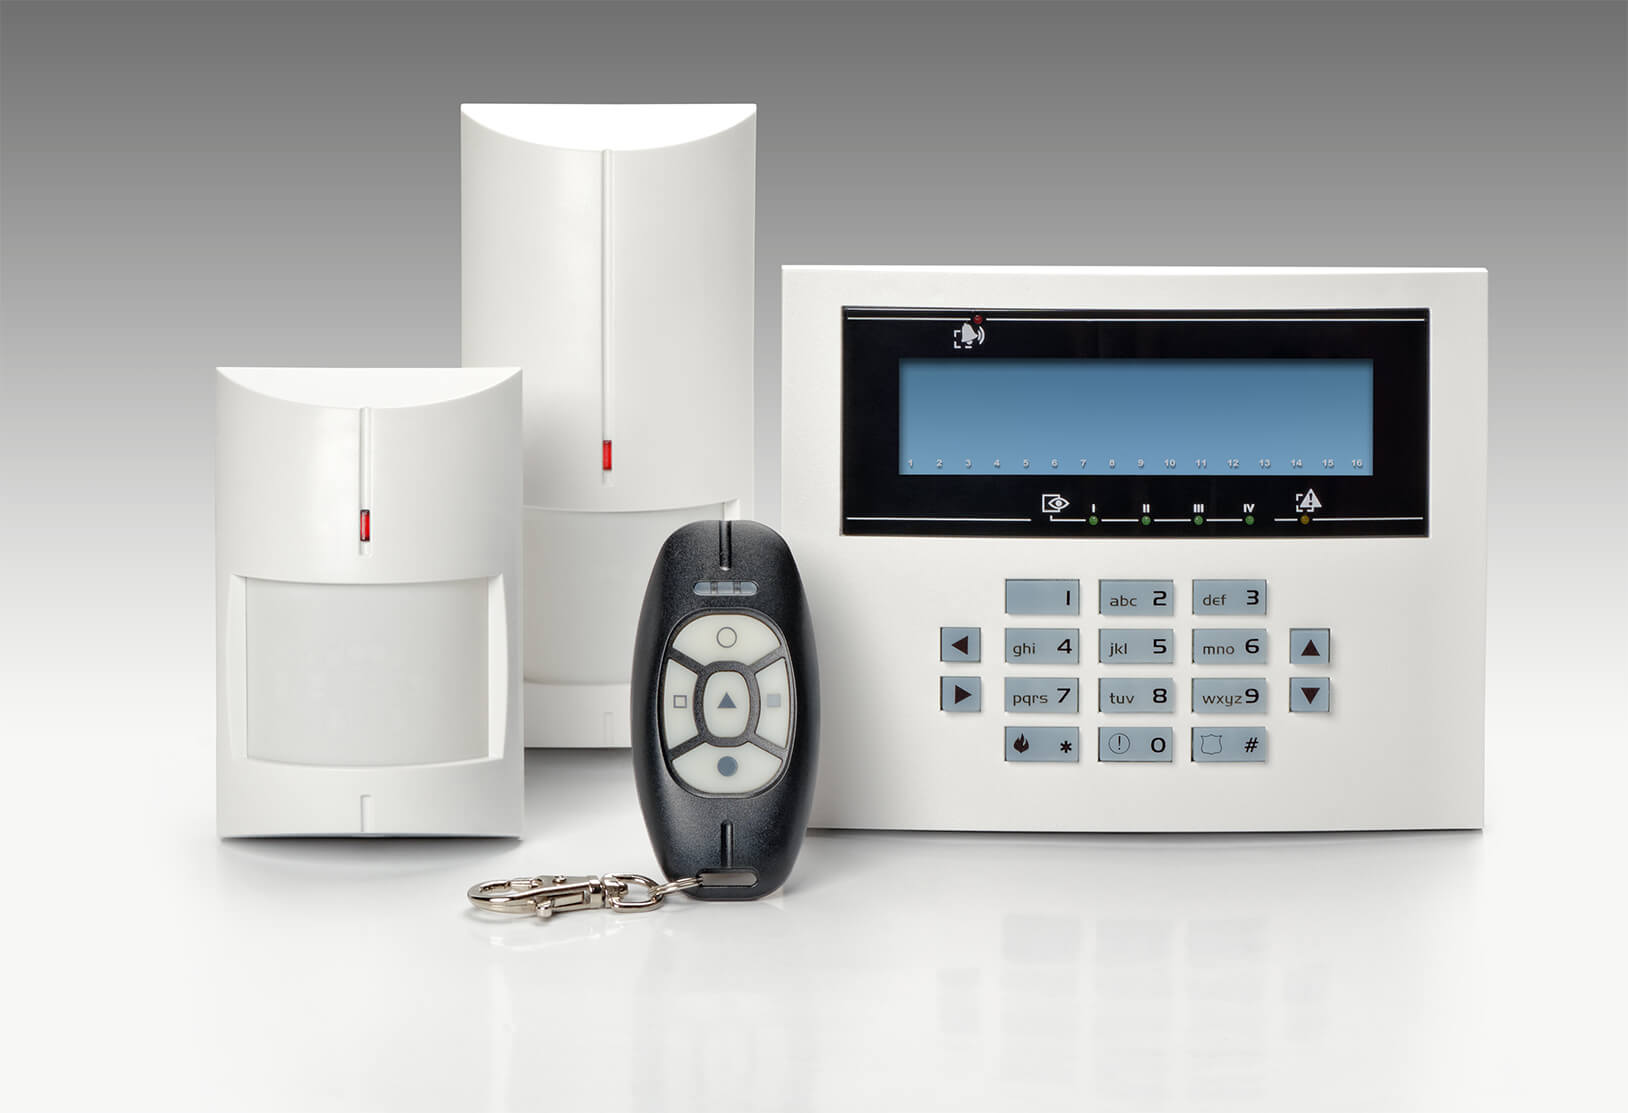 Commercial Burglar Alarms For Business in Upton Park E7  - Local Upton Park E7 burglar alarm company.Call 02078872244 - Dedicated to Safety & Security. Companies, shops and homes ..